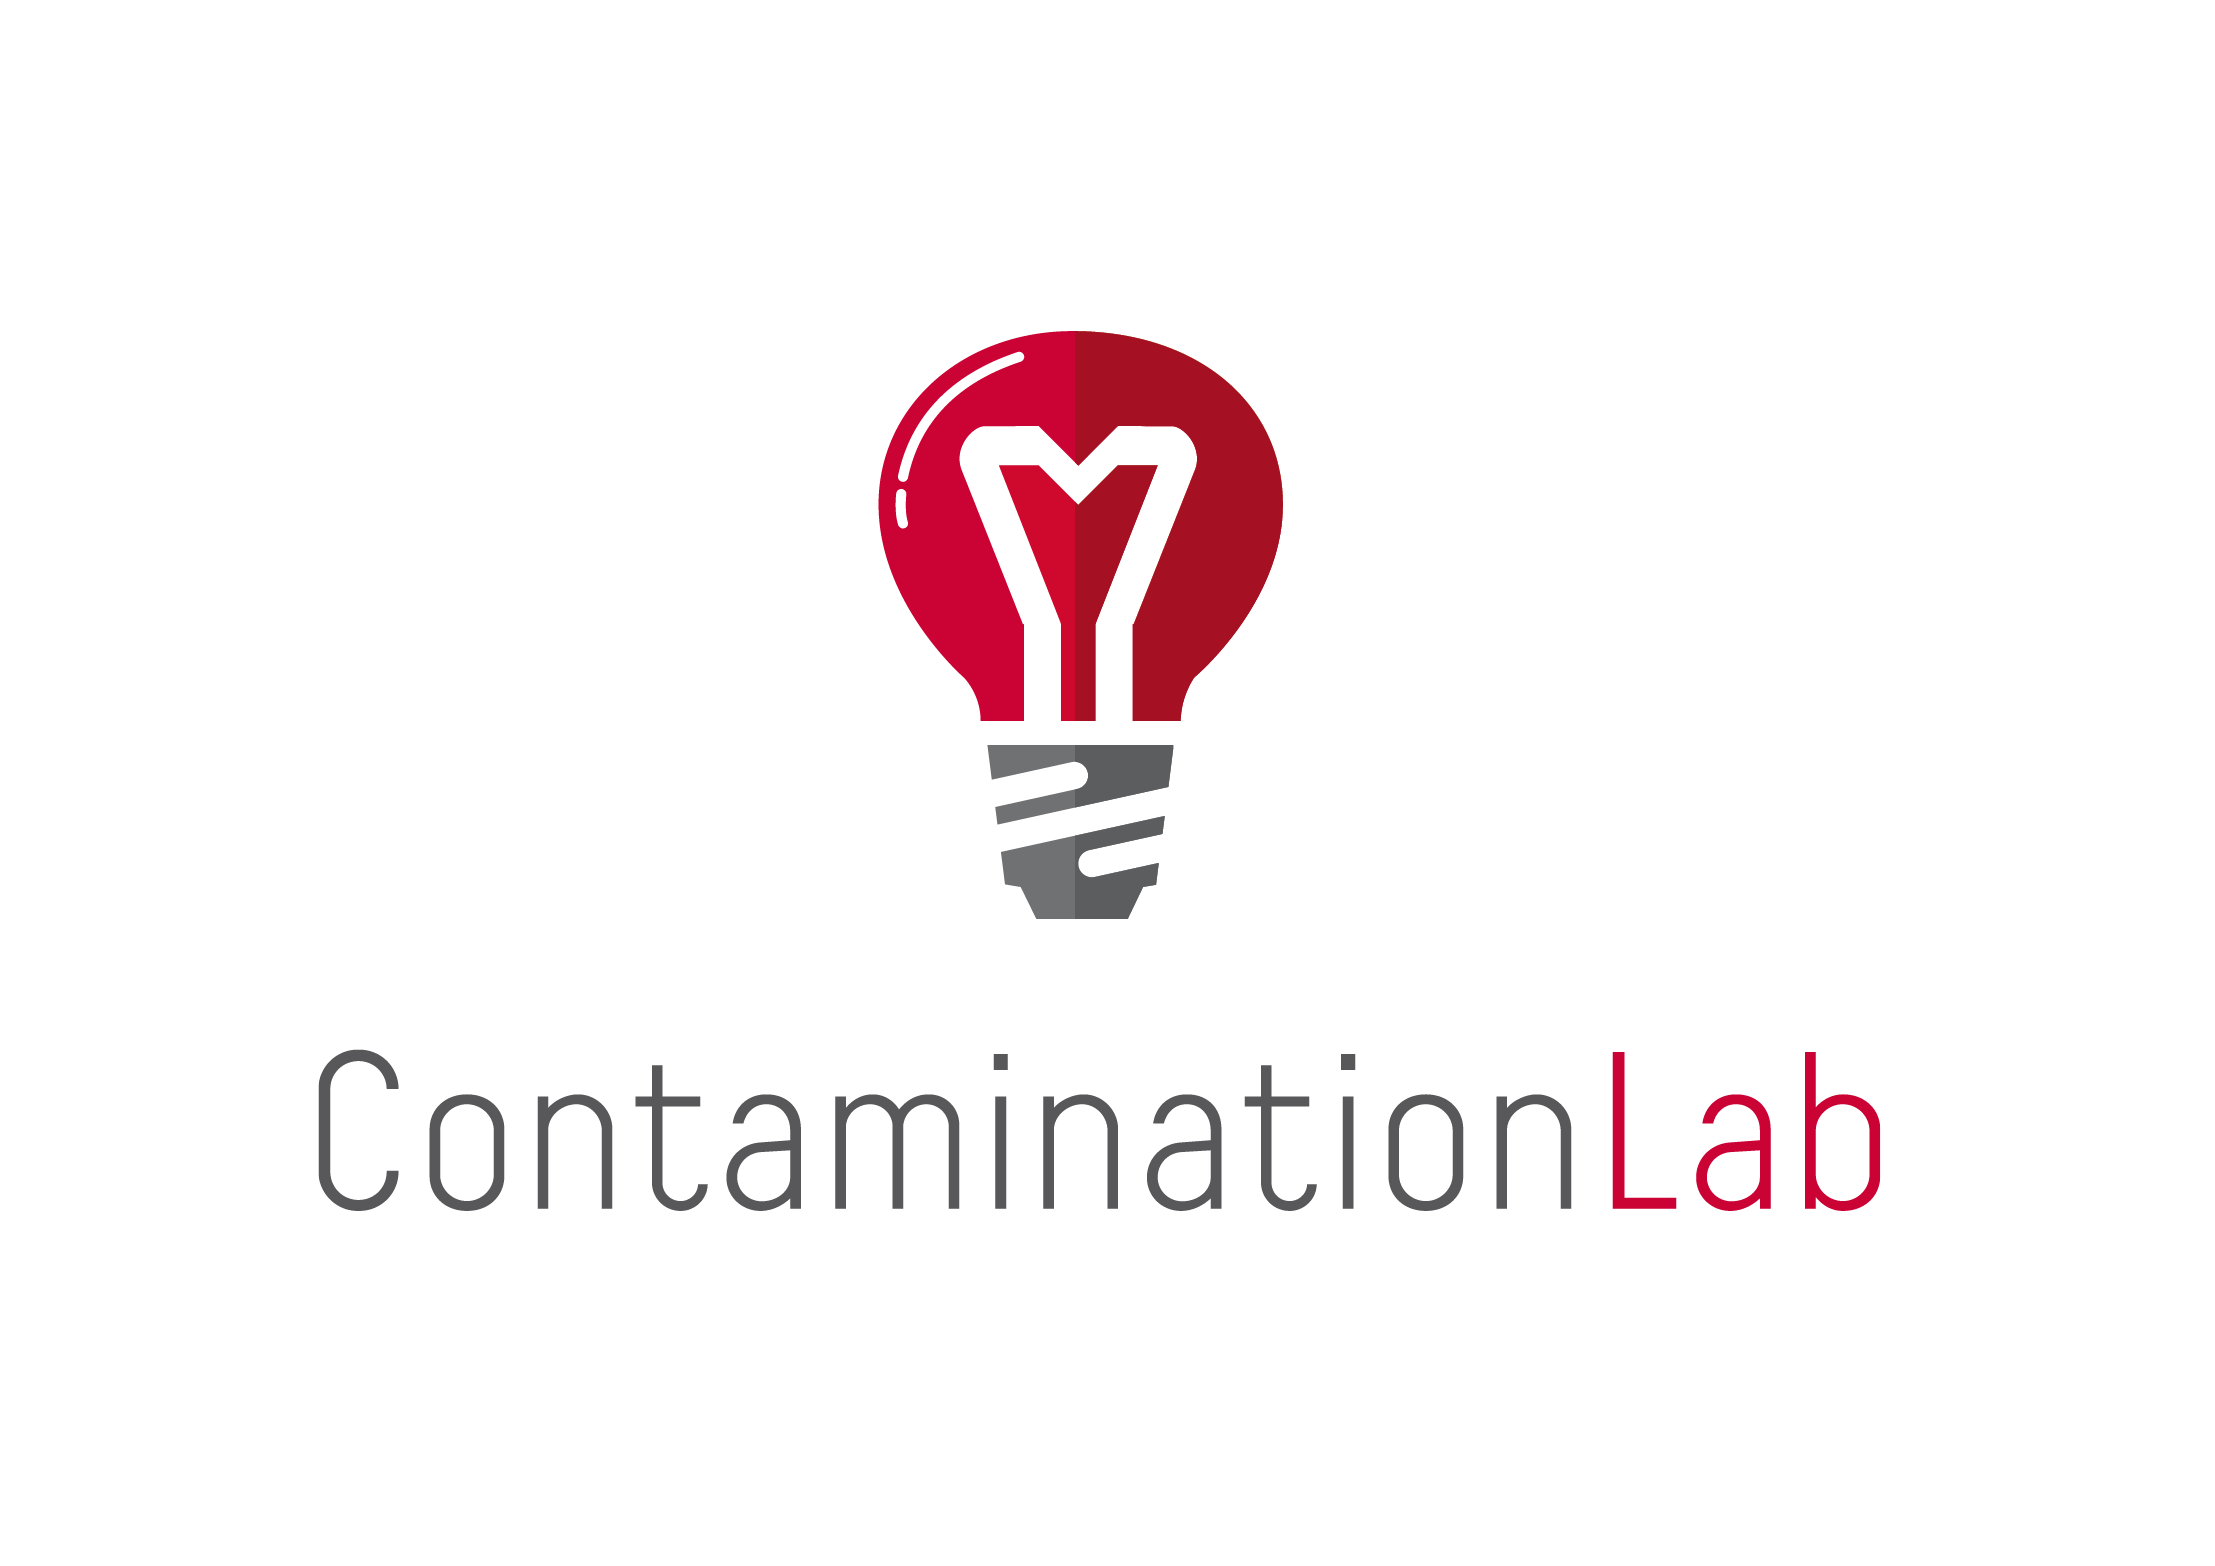 Contamination Lab